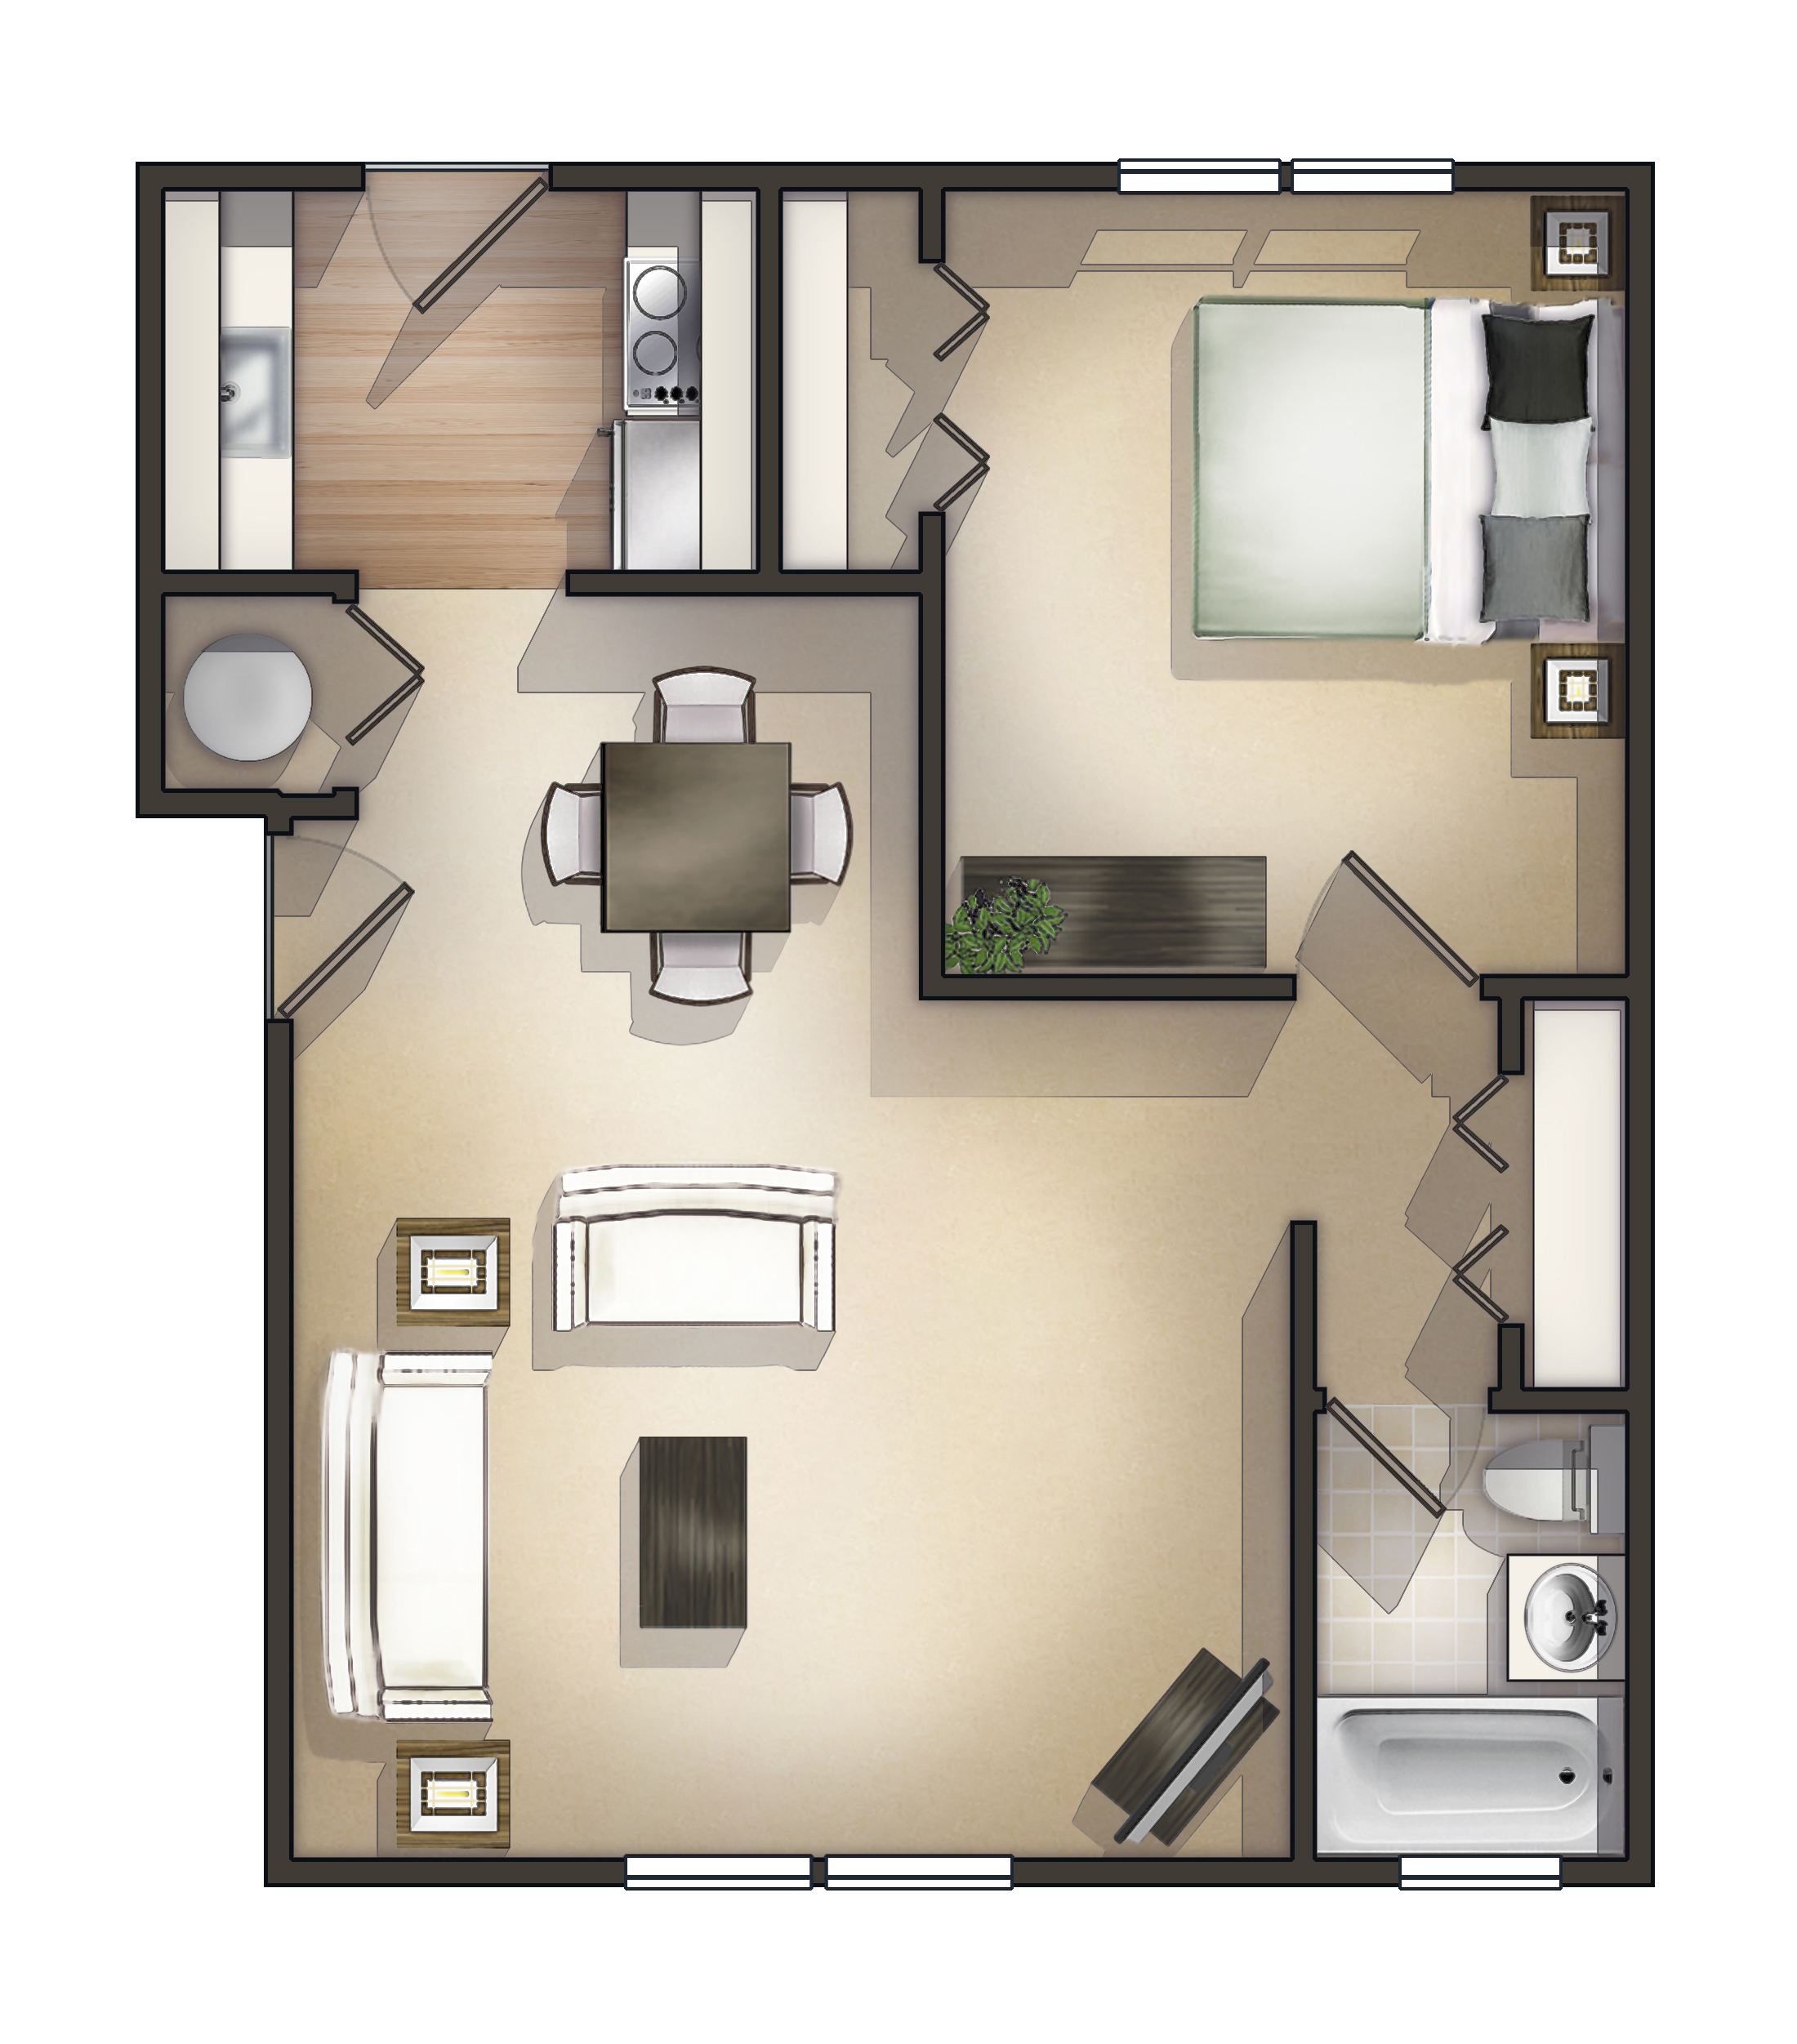 1 Bedroom Deluxe Garden Apartment Floorplan